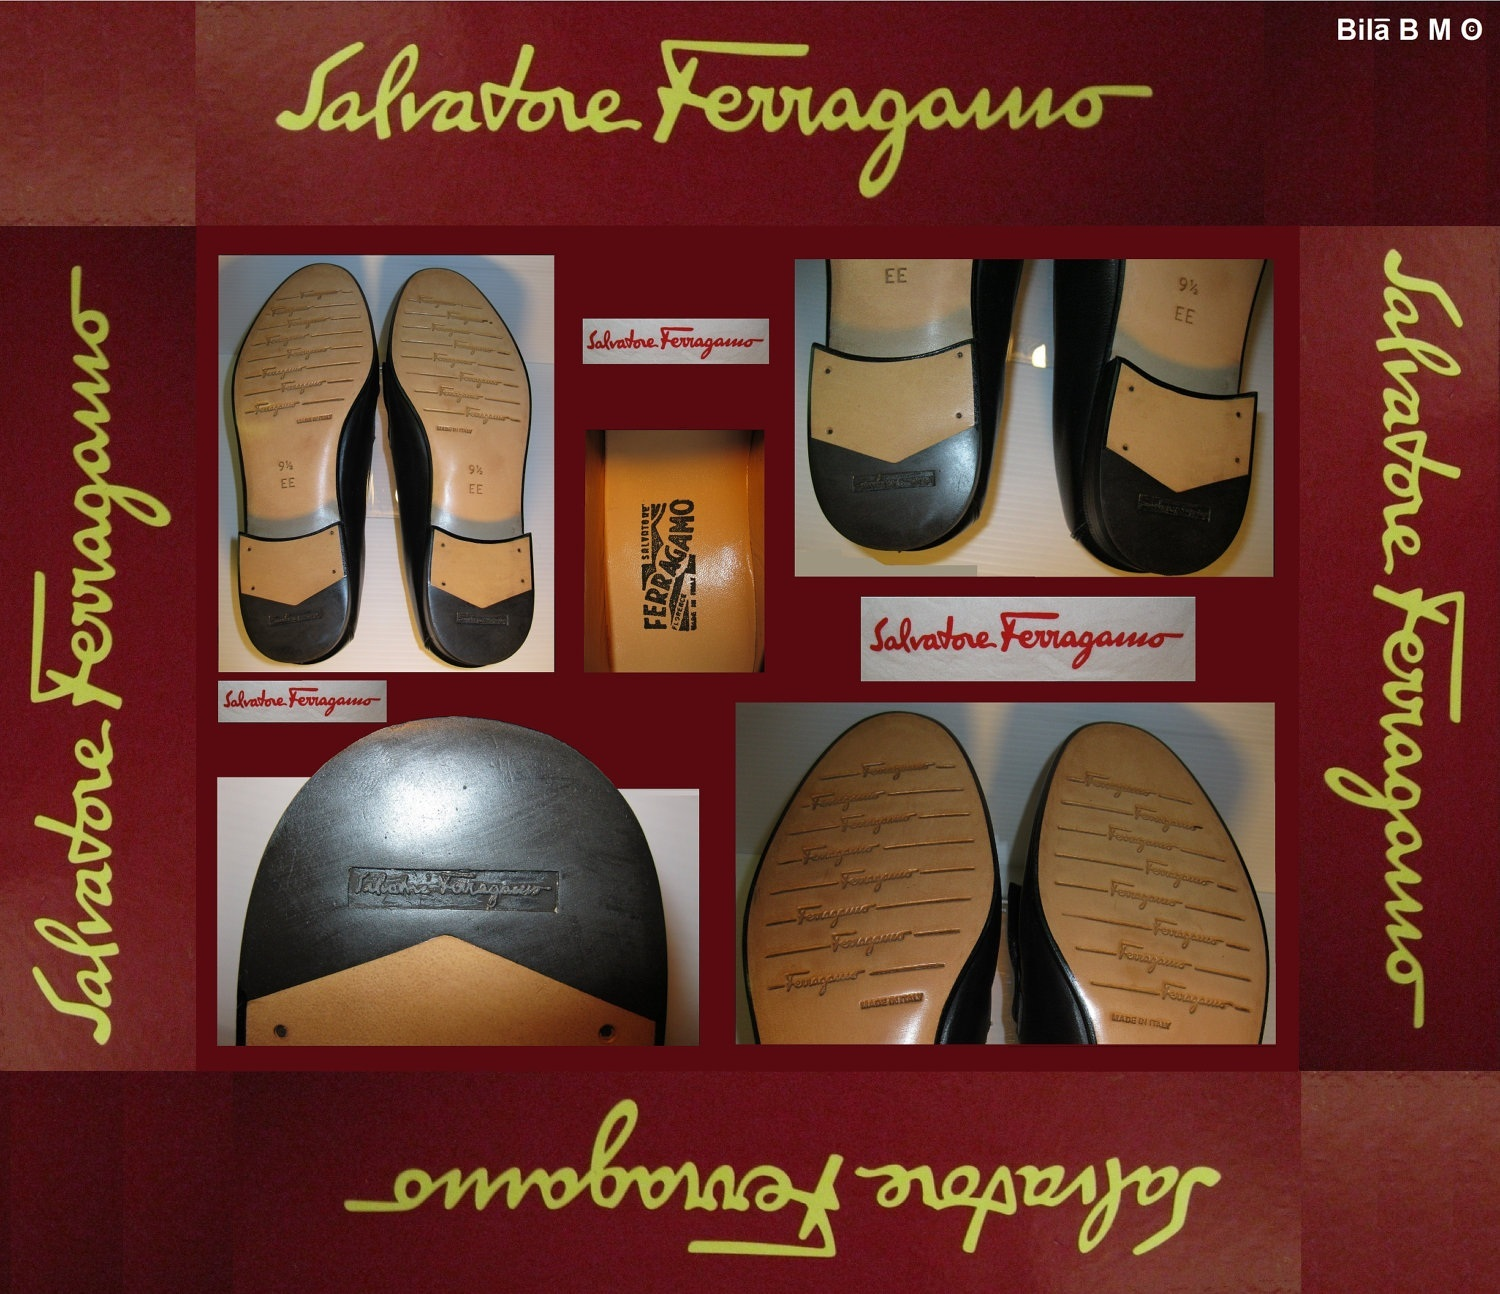 SALVATORE FERRAGAMO SHOES-Size 9 1/2 EE-A Work of Art-Shoe Maker To The Stars